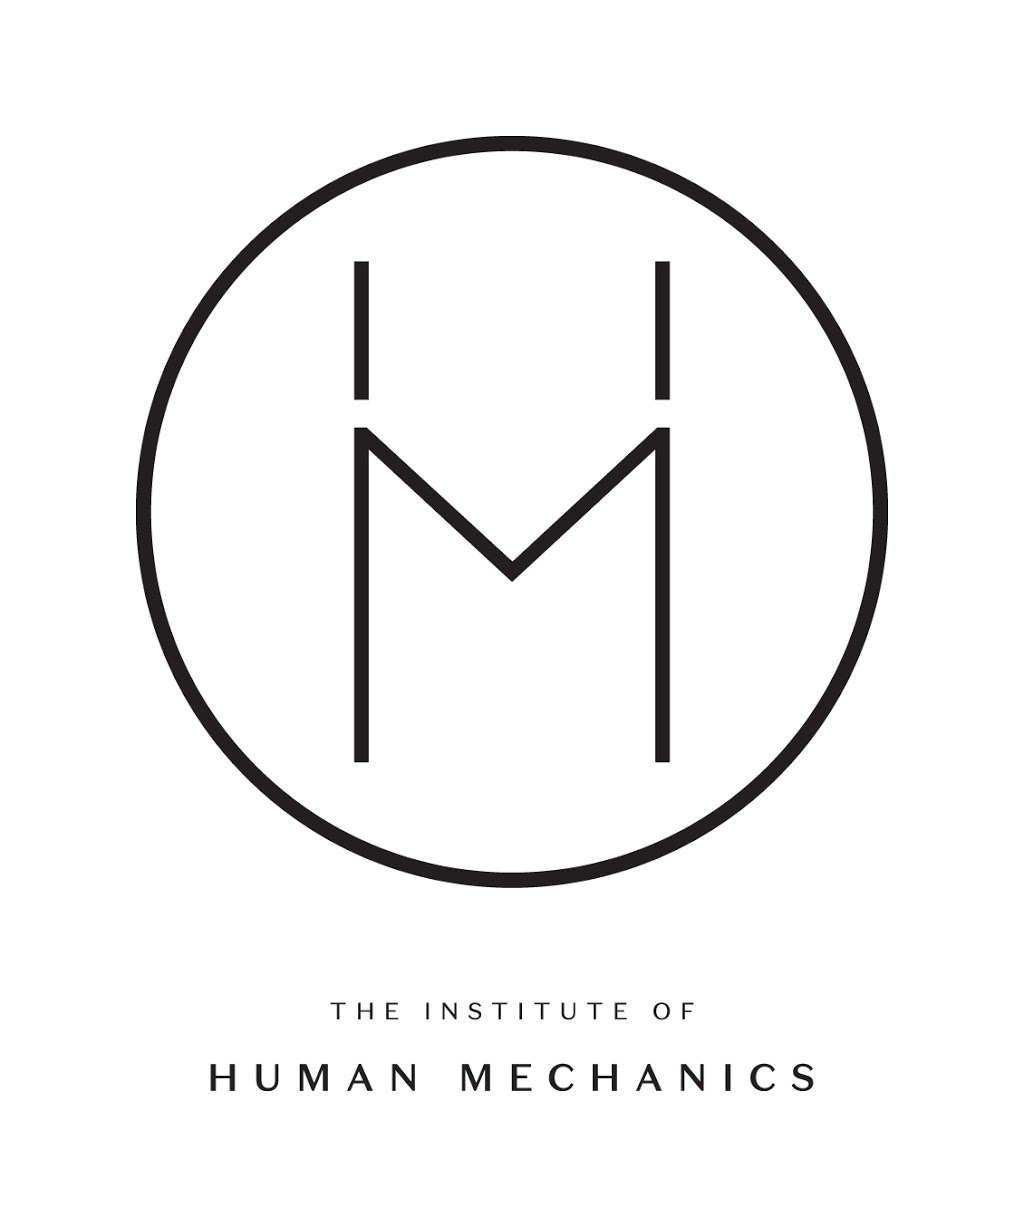 The Institute of Human Mechanics | health | 199 Avenue Rd, Toronto, ON M5R 2J3, Canada | 41662068611 OR +1 416-620-6861 ext. 1